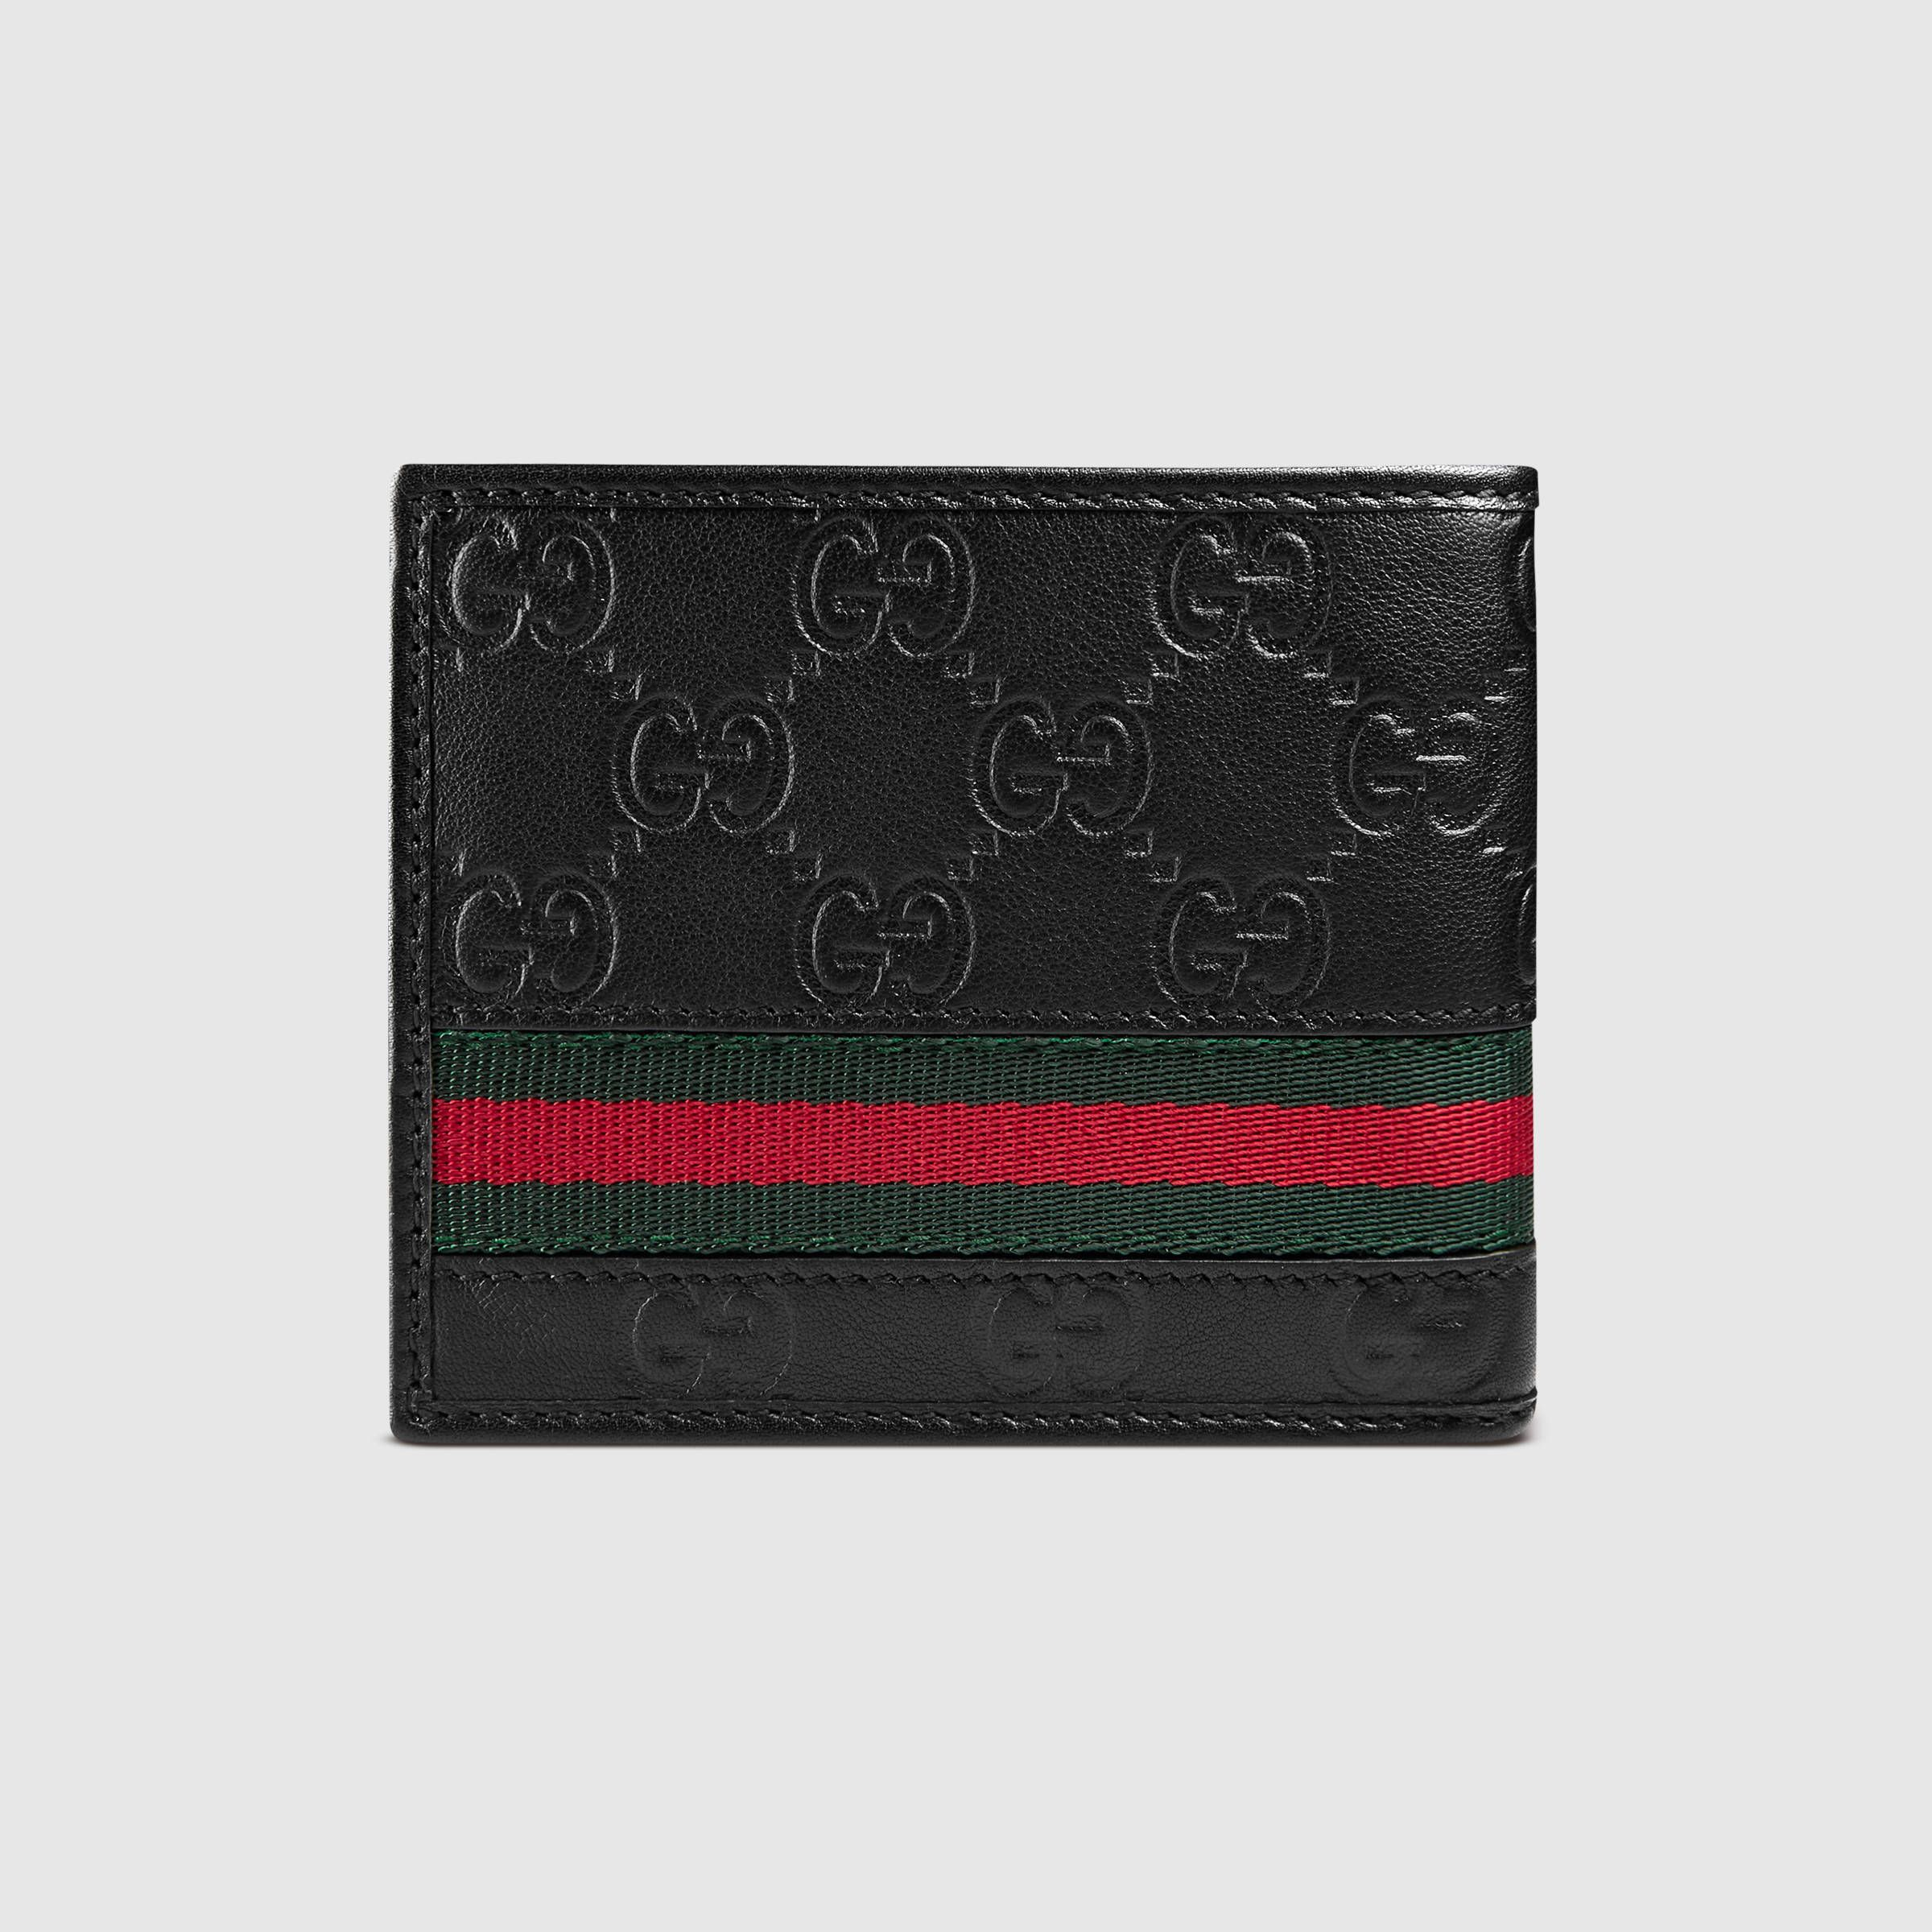 afd879f421e Gucci Men - Guccissima web bi-fold wallet - 138042A0VBR1060 More